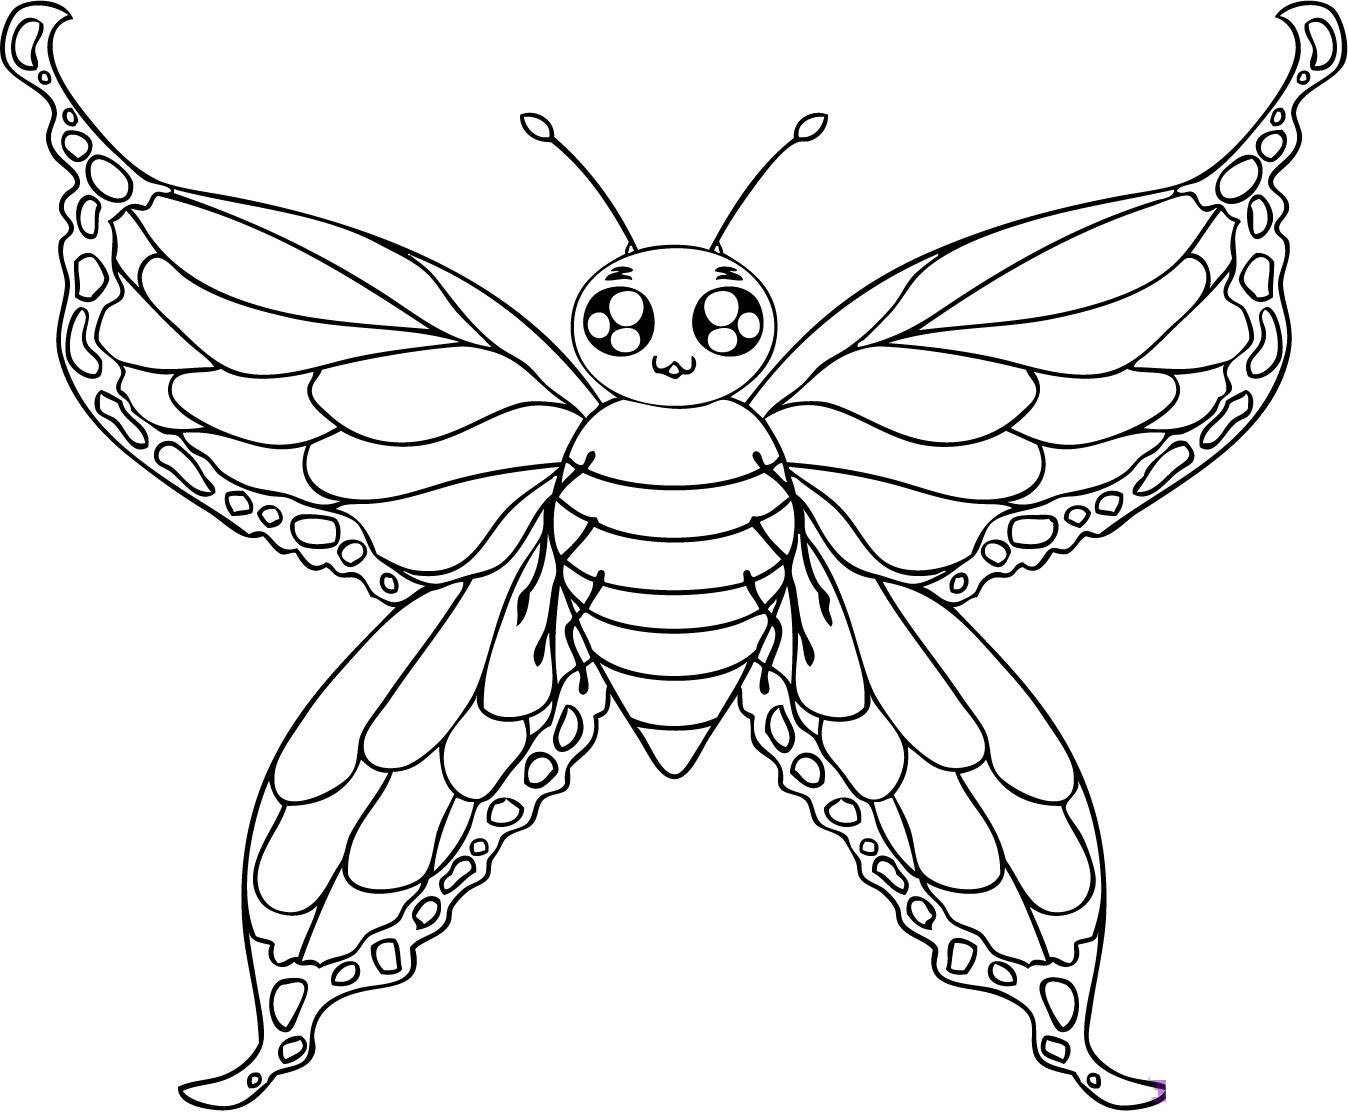 coloring pages detailed butterfly - photo#32